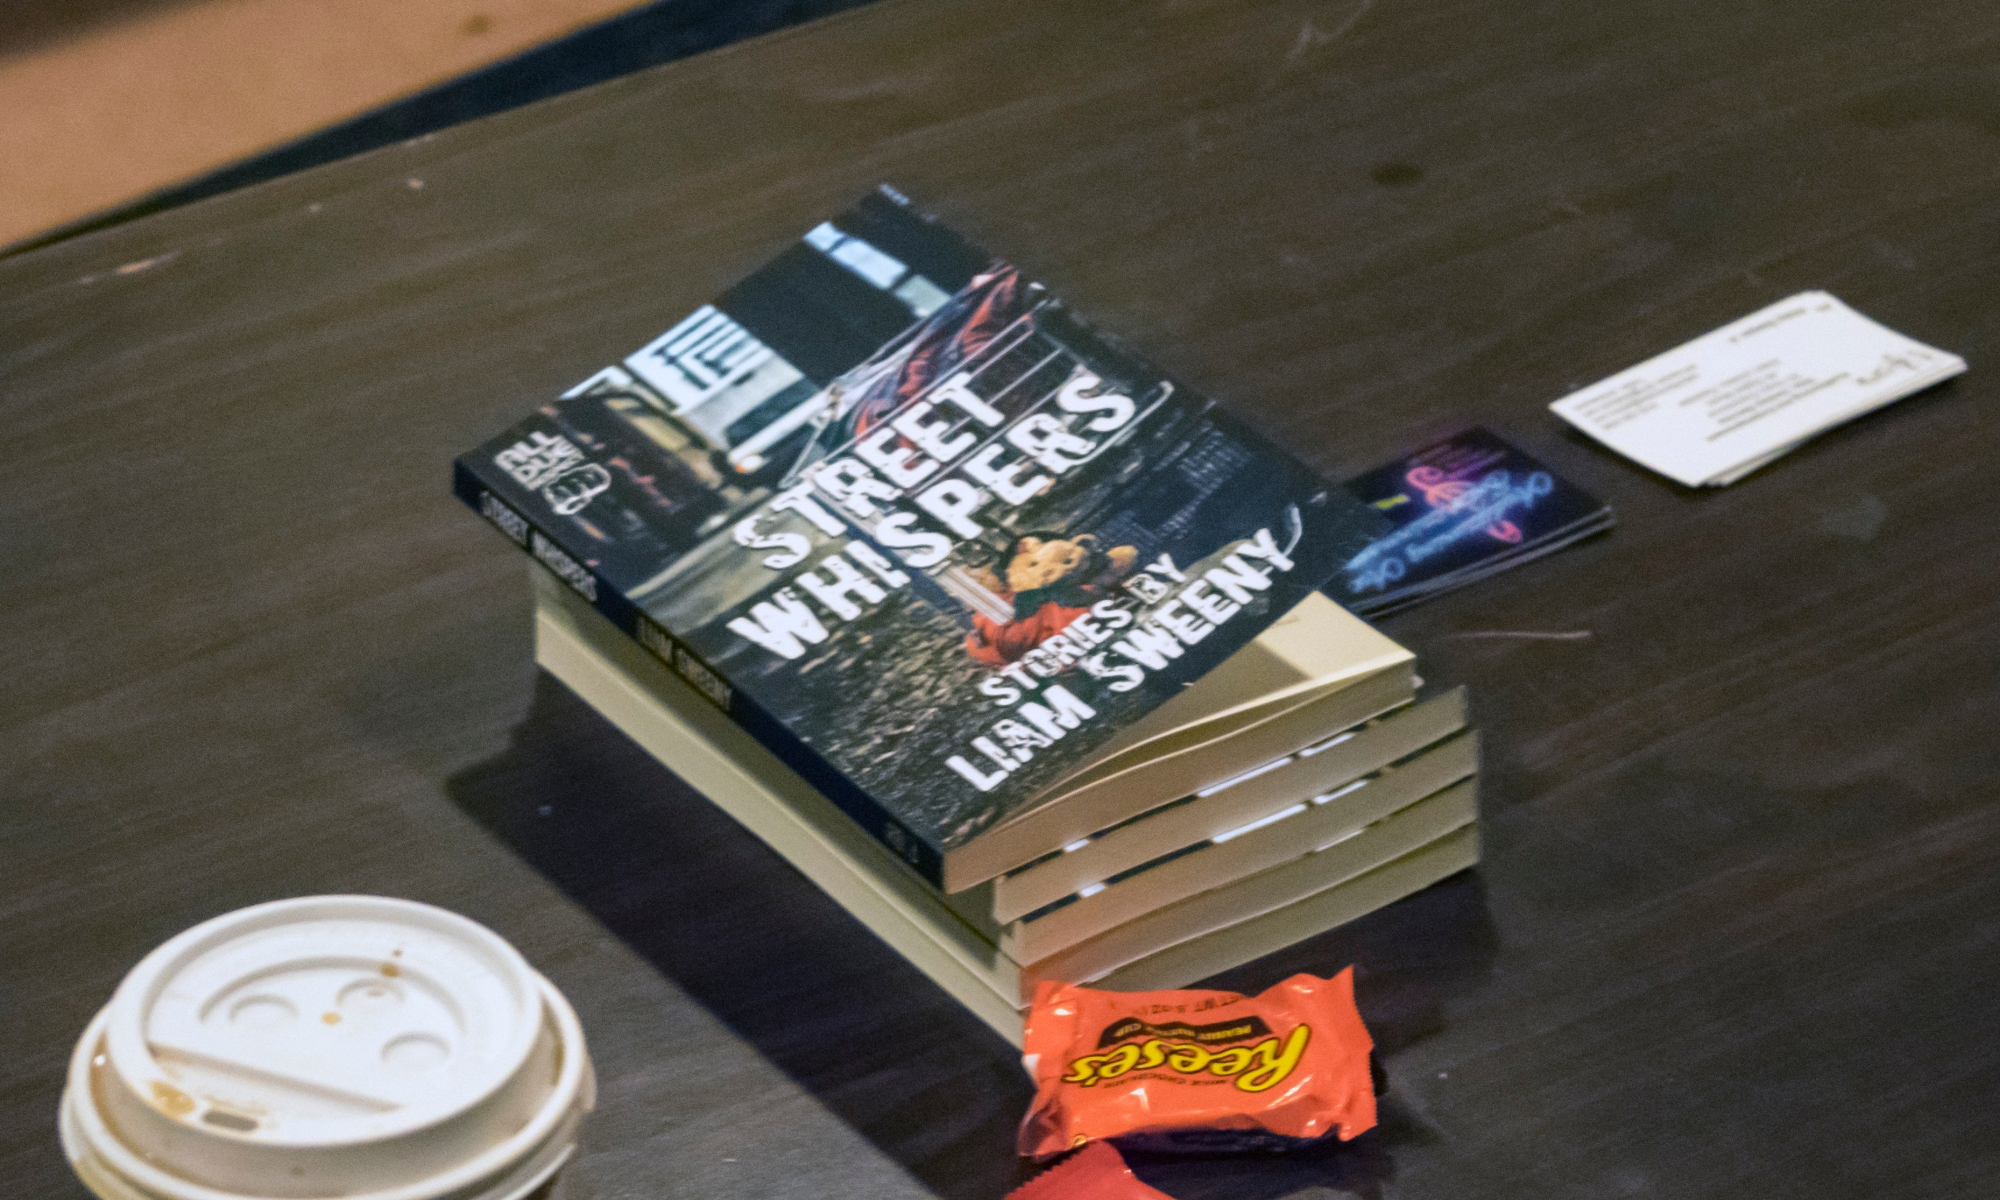 Copies of Street Whispers book on table.